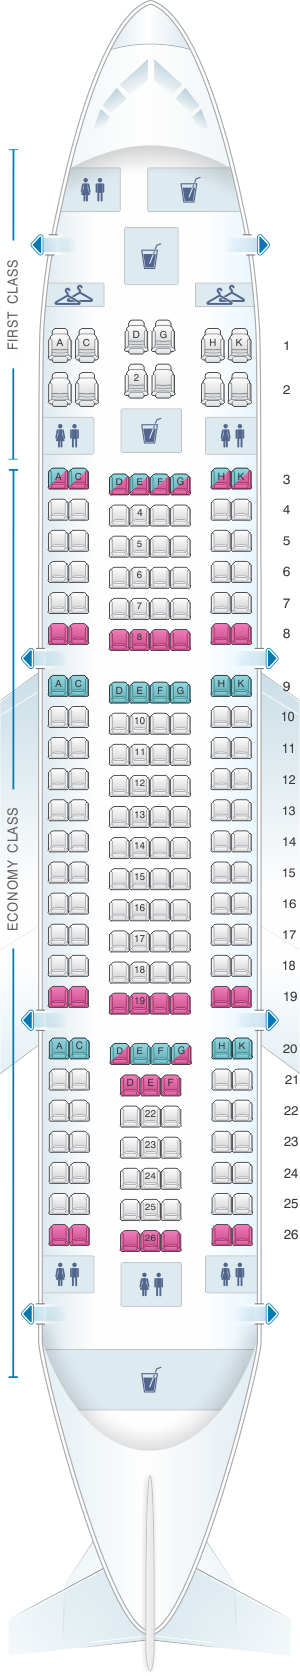 Seat map for Yemenia - Yemen Airways Airbus A310 325 198pax